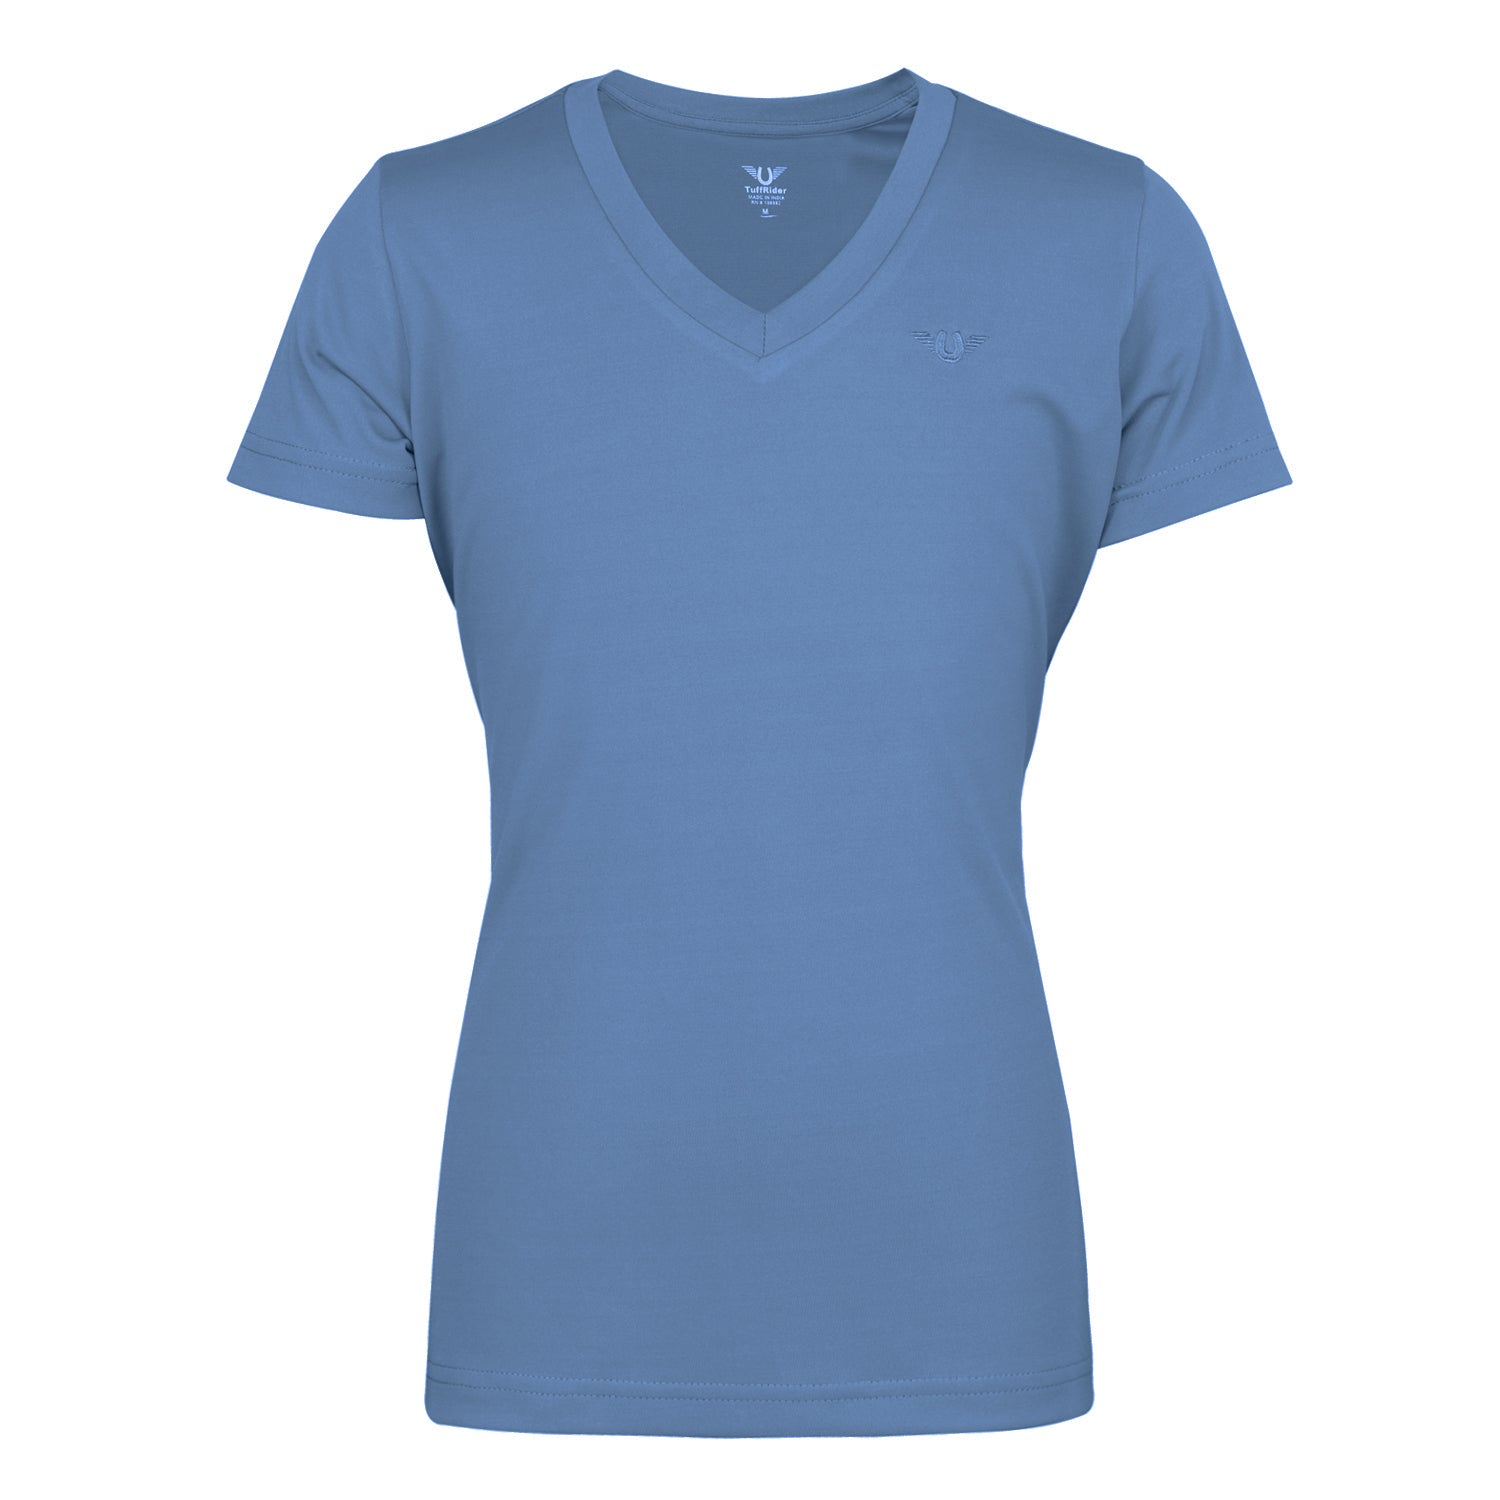 Children's Taylor Tee Short Sleeve T-Shirt - TuffRider - Breeches.com